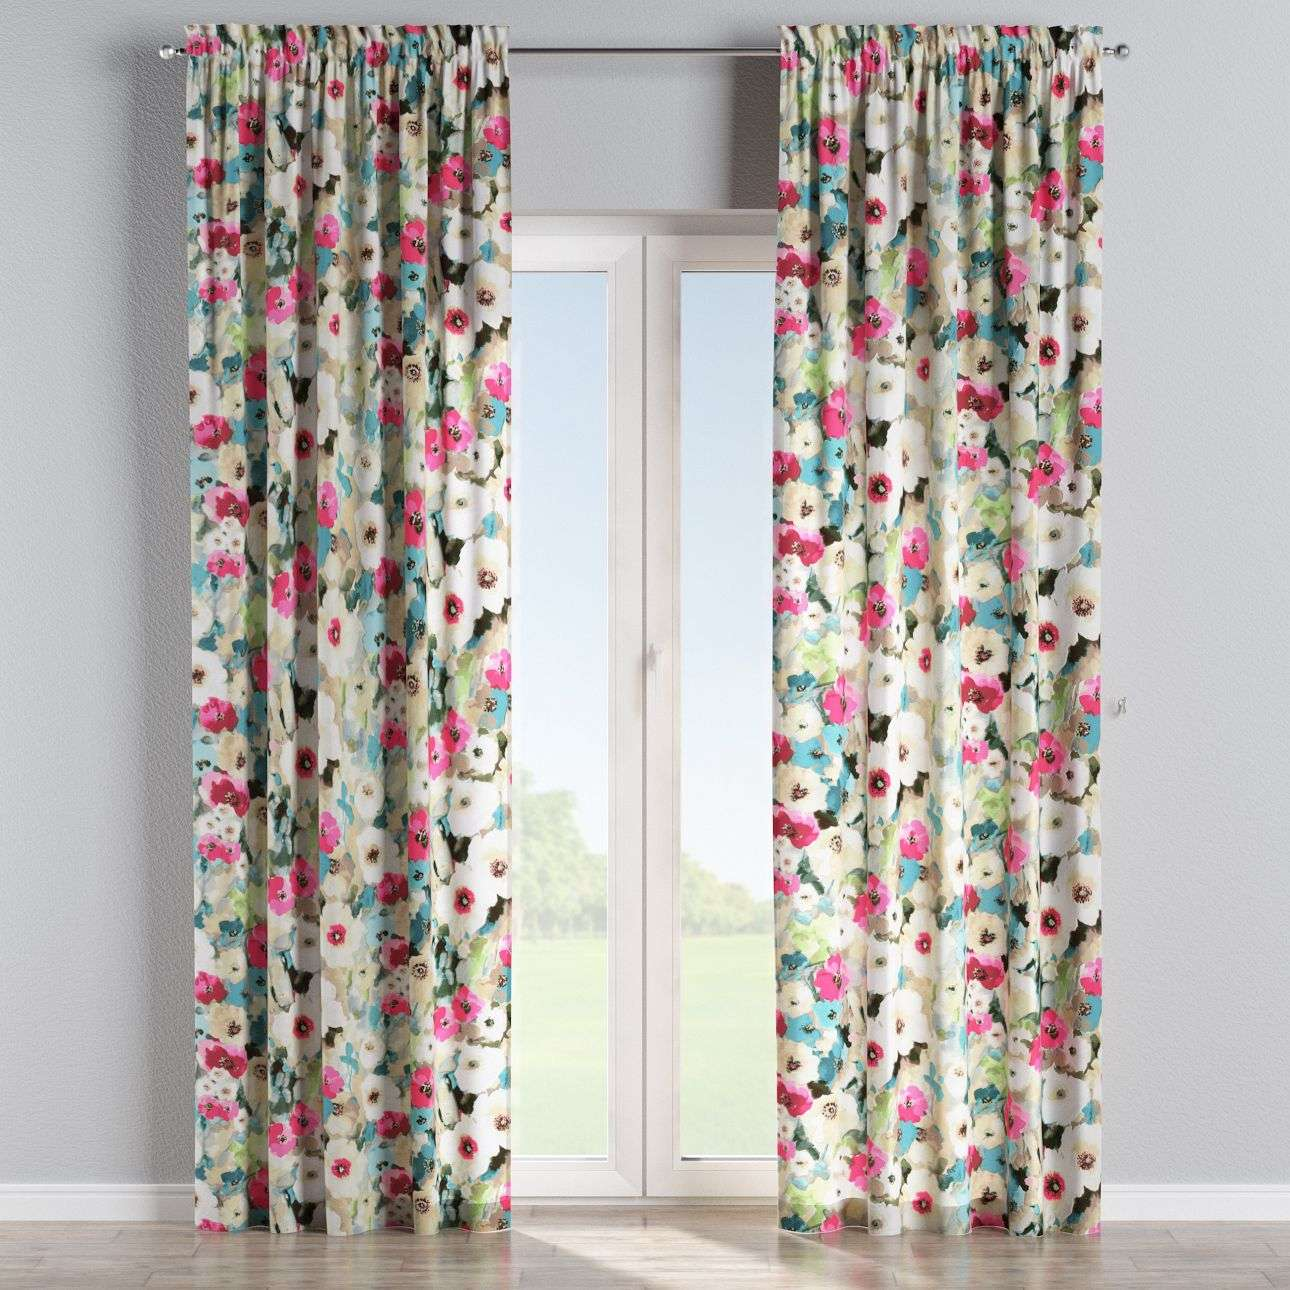 Slot and frill curtains 130 x 260 cm (51 x 102 inch) in collection Monet, fabric: 140-08